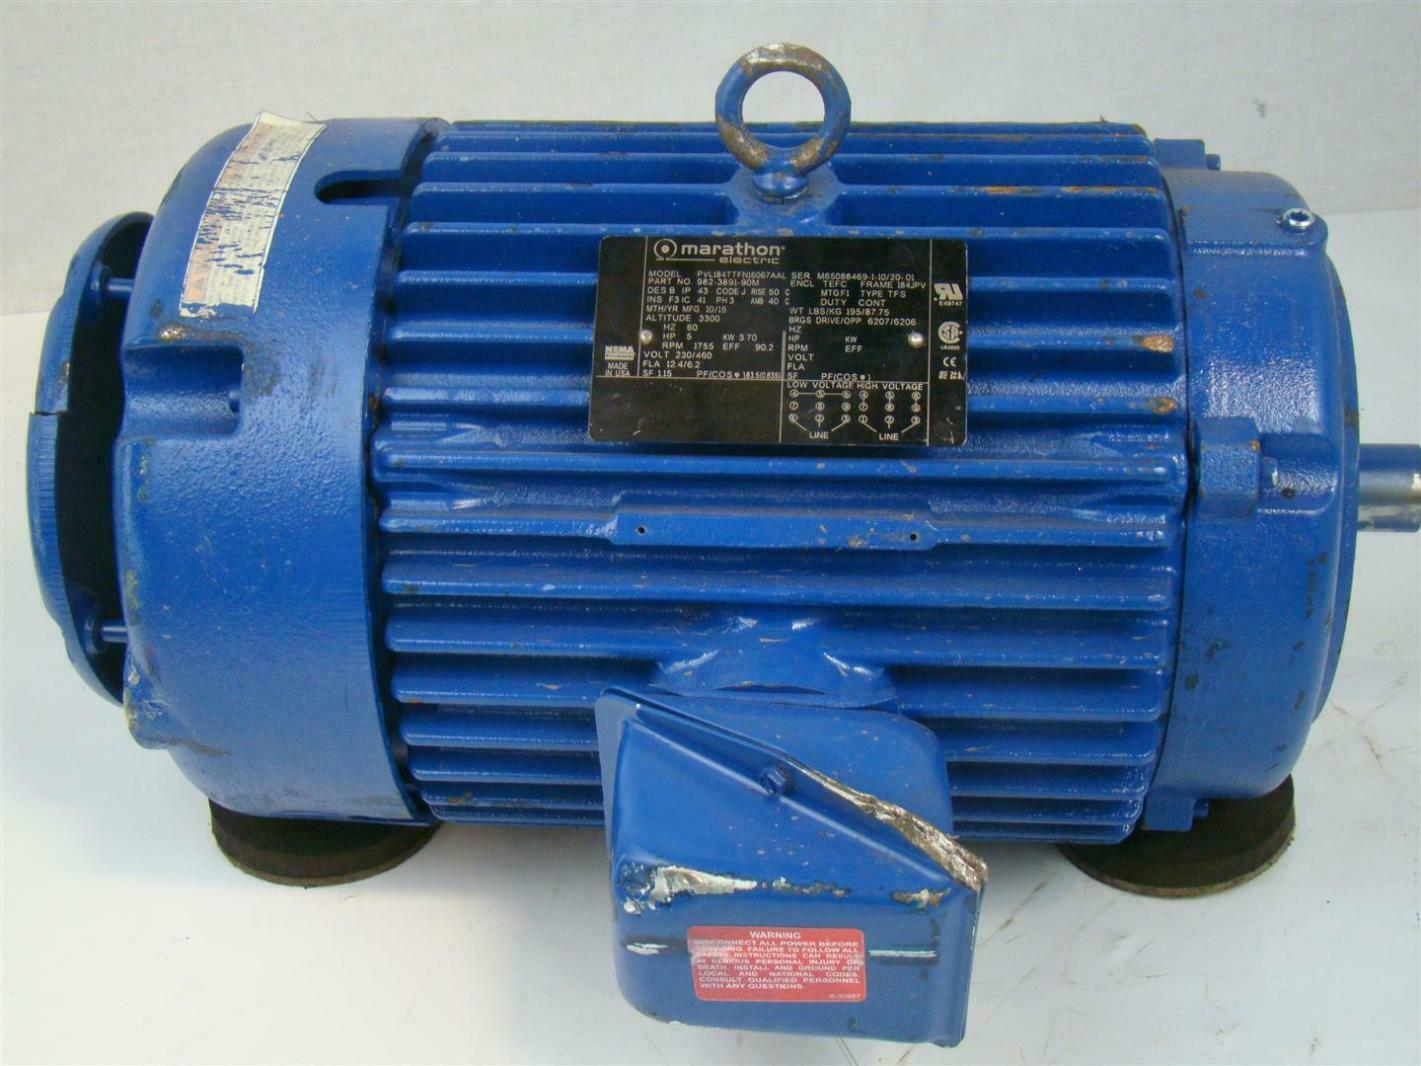 marathon 3 phase electric motor 5 hp 1755 rpm model